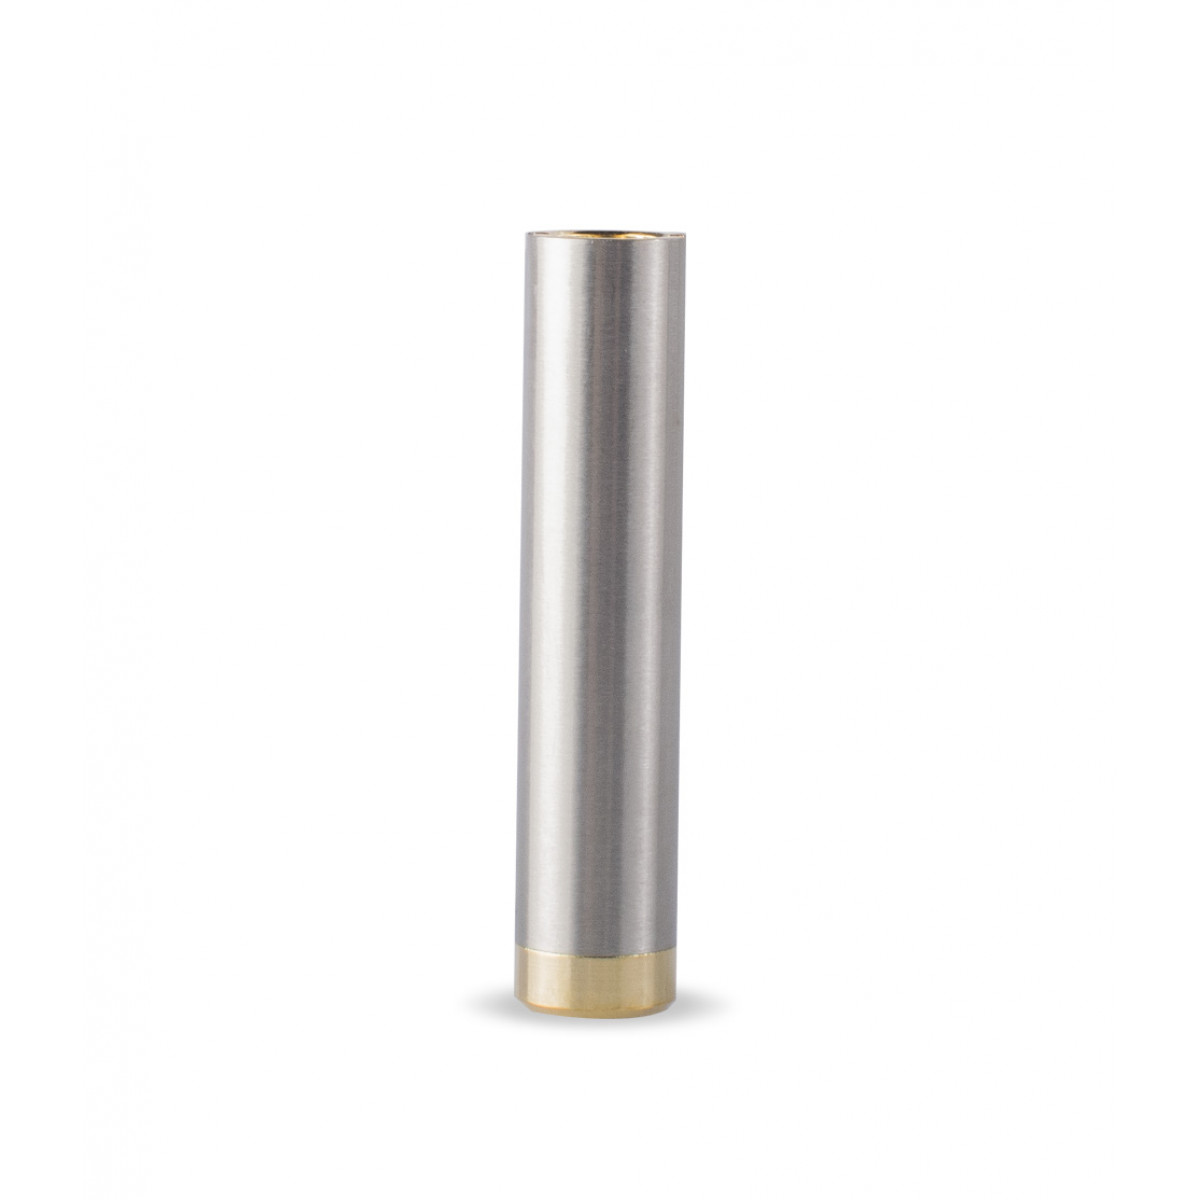 Exxus Snap VV Magnetic Extender for Wide Bore Tanks by Exxus